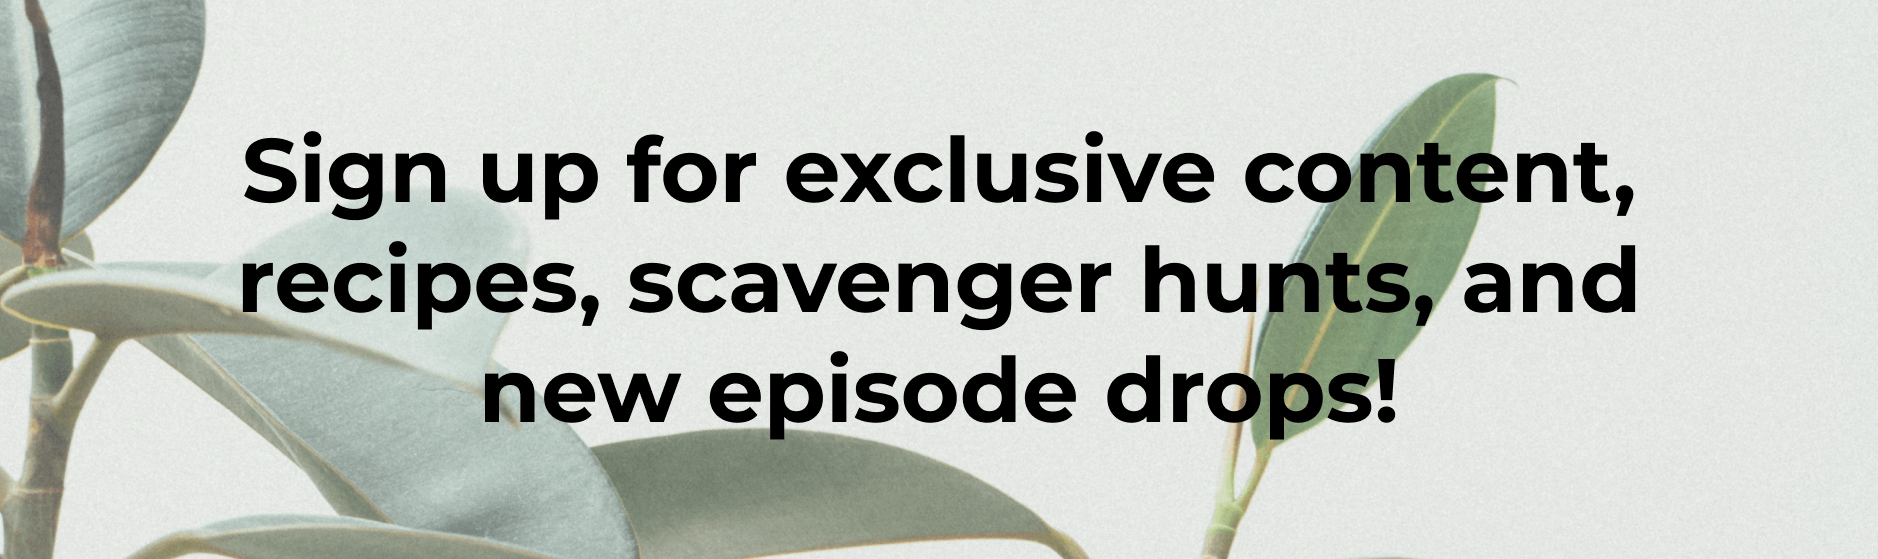 Sign up for exclusive content, recipes, scavenger hunts, and new episode drops!